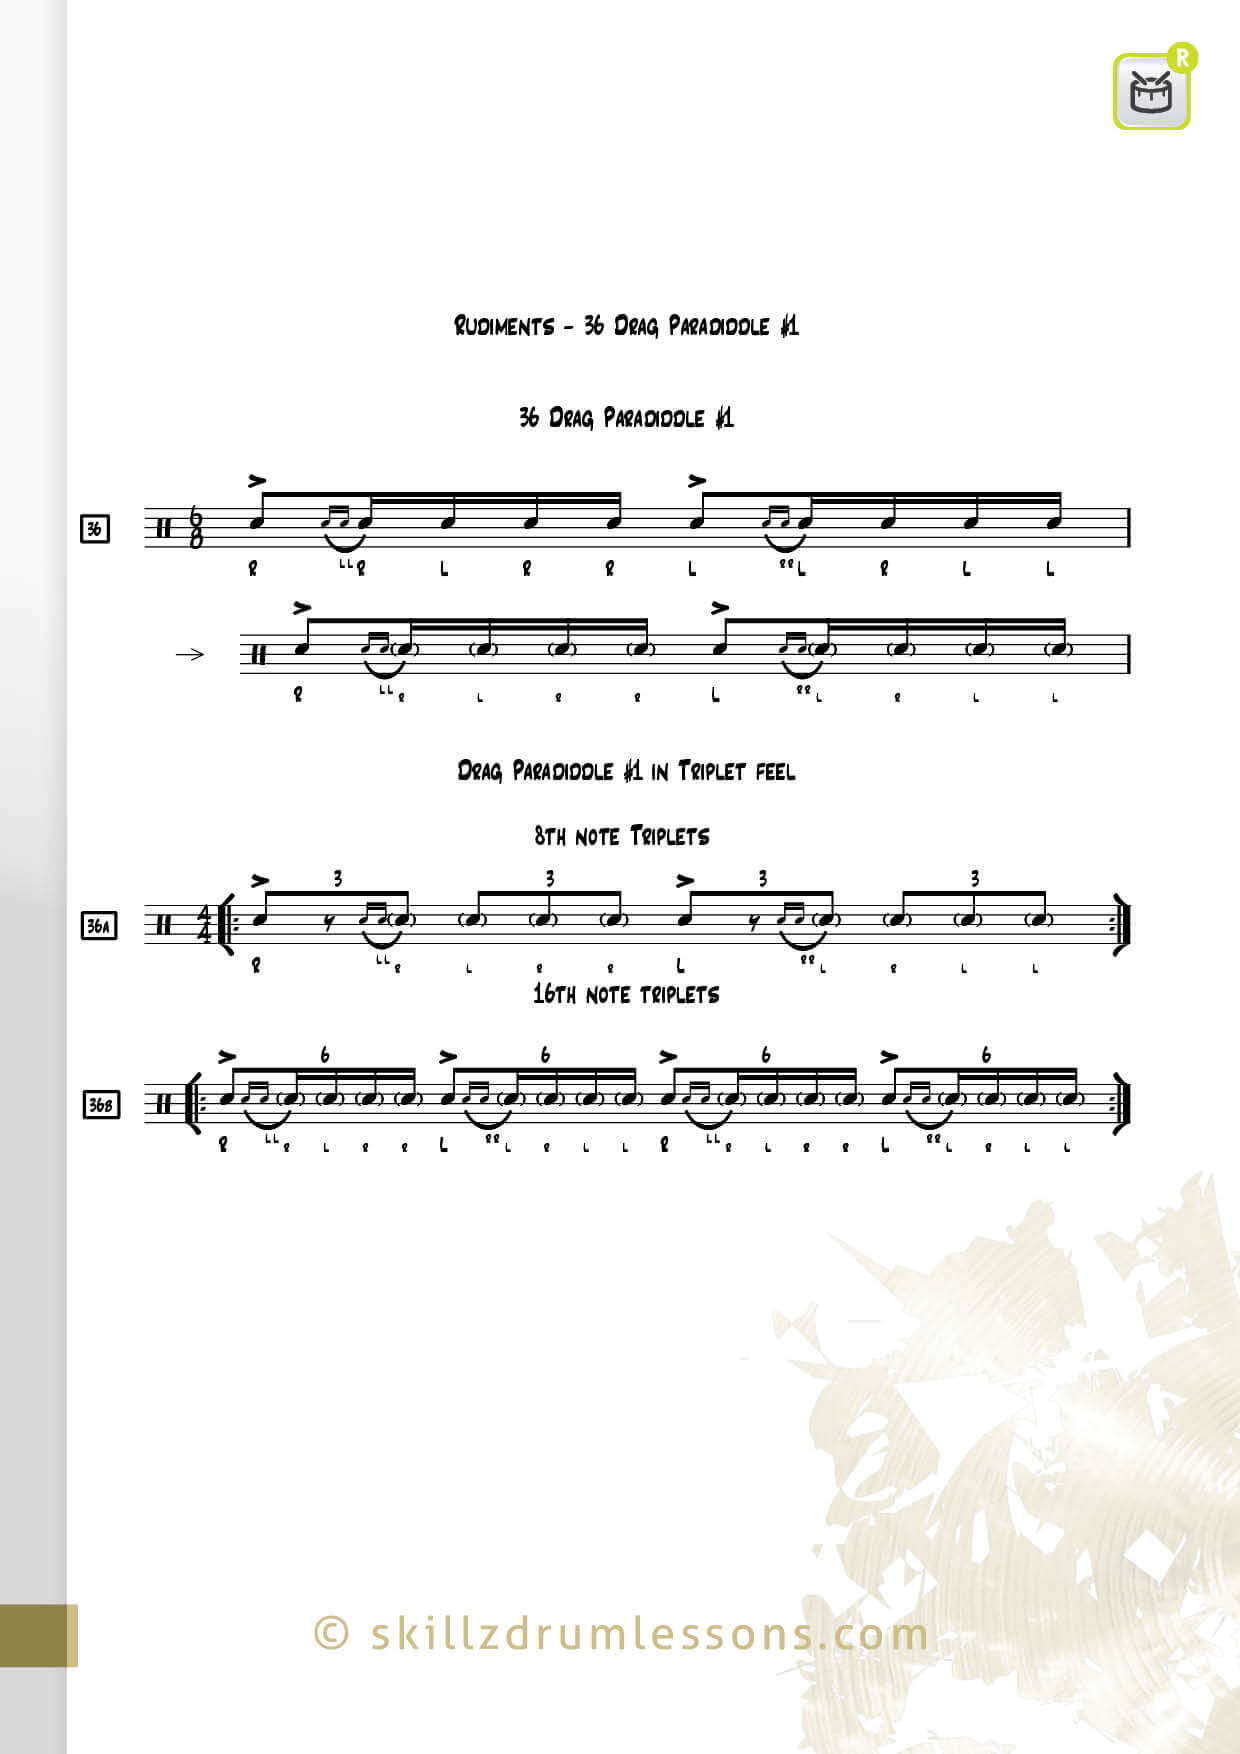 This is an image of the Official 40 Essential P.A.S. Rudiments #36 The Drag Paradiddle #1 by Skillz Drum Lessons